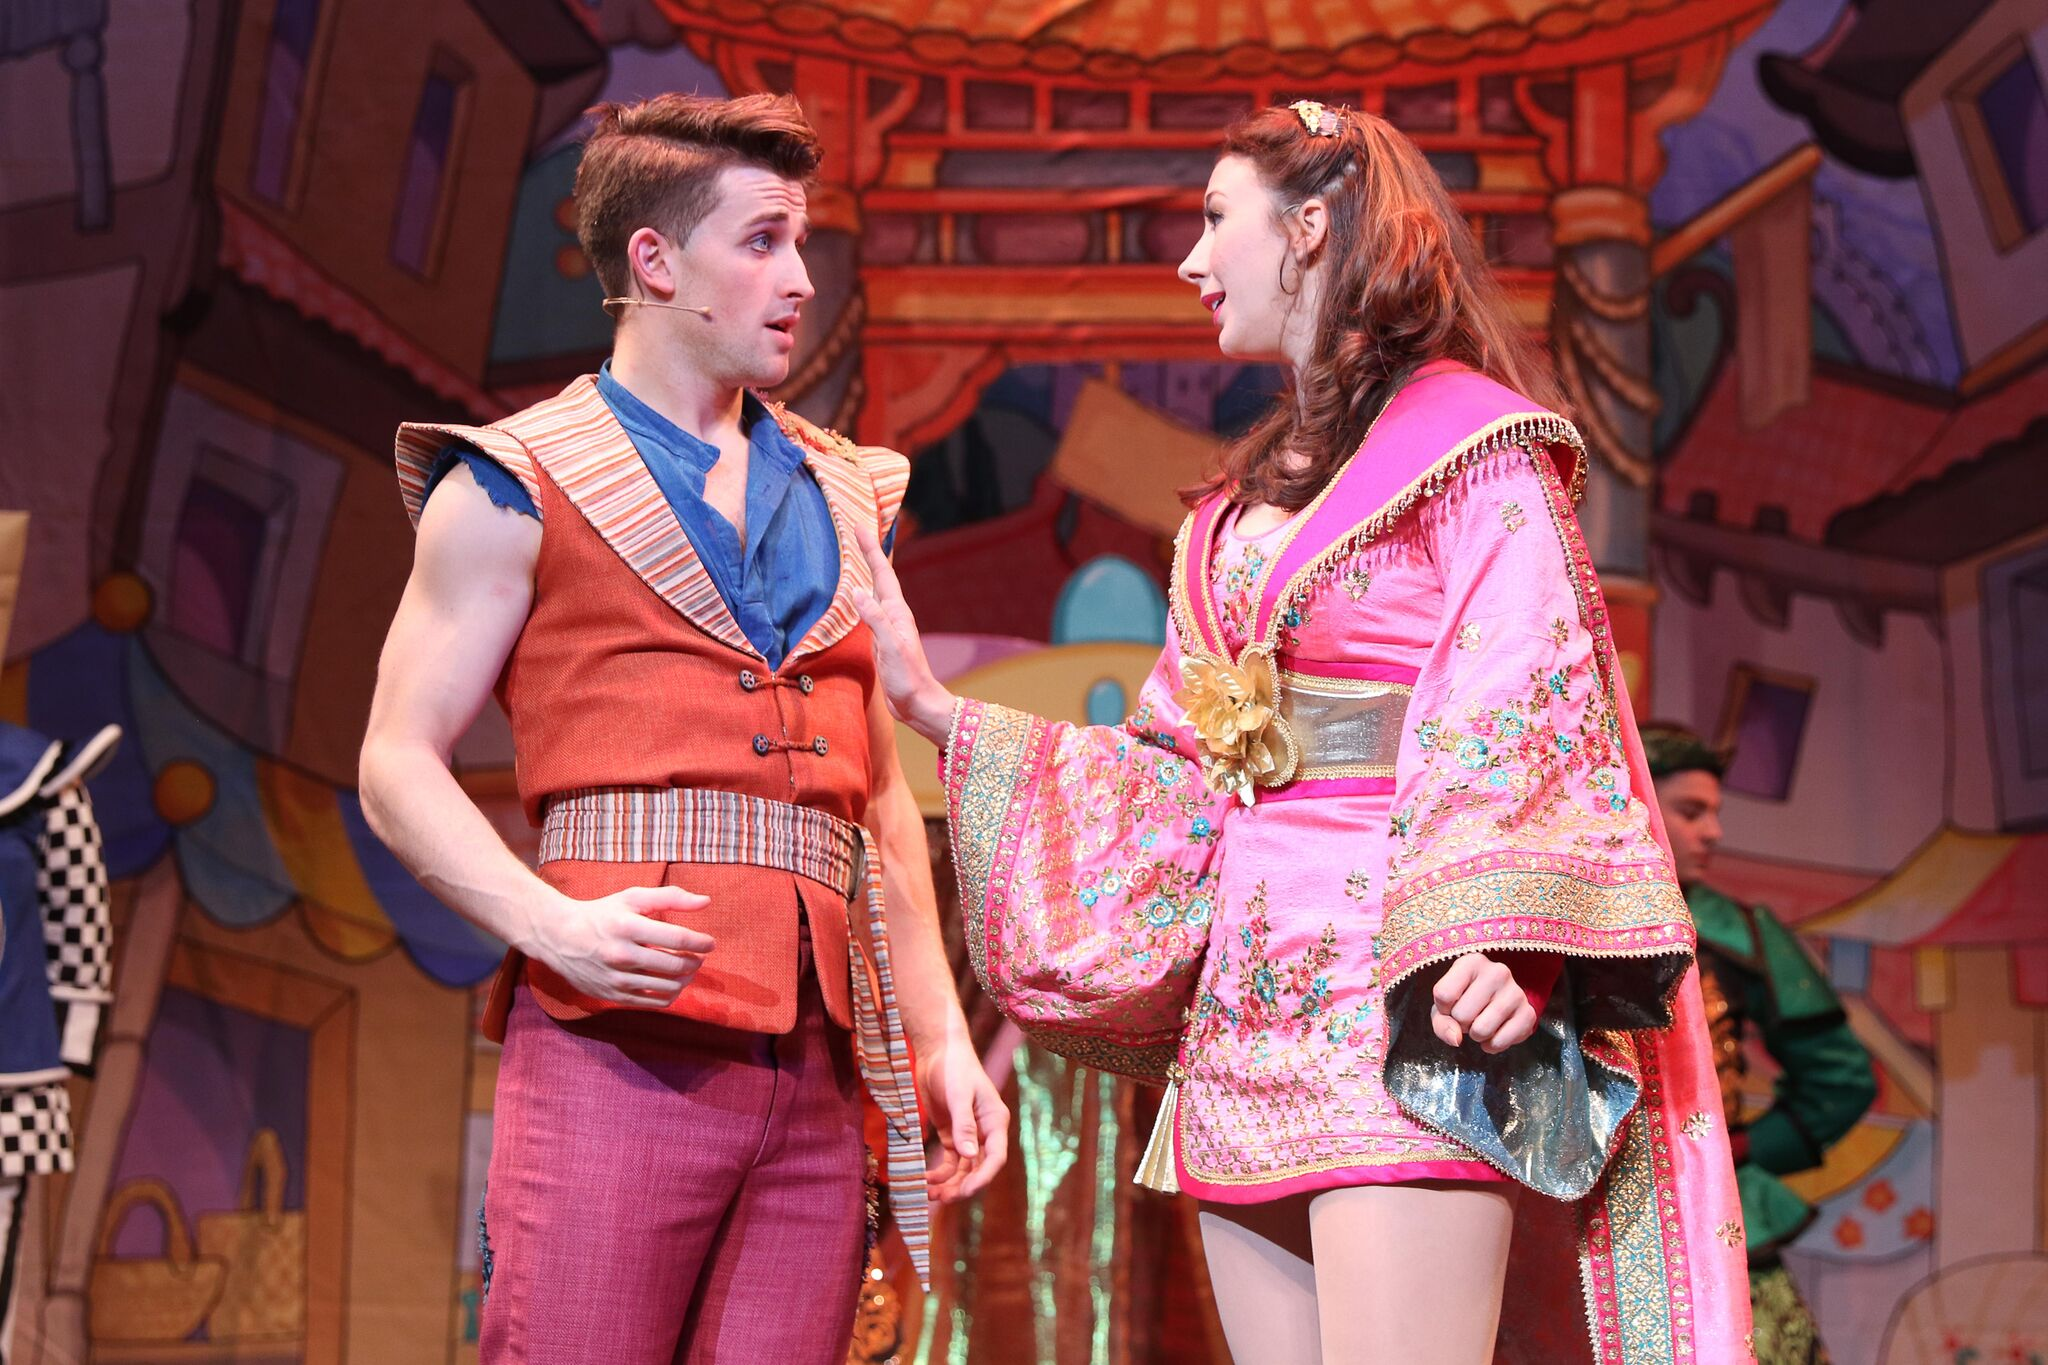 Aladdin (Ben Darcy) and Princess Xiao Xue (Grace Eccle). Picture by Antony Thompson, Thousand Word Media